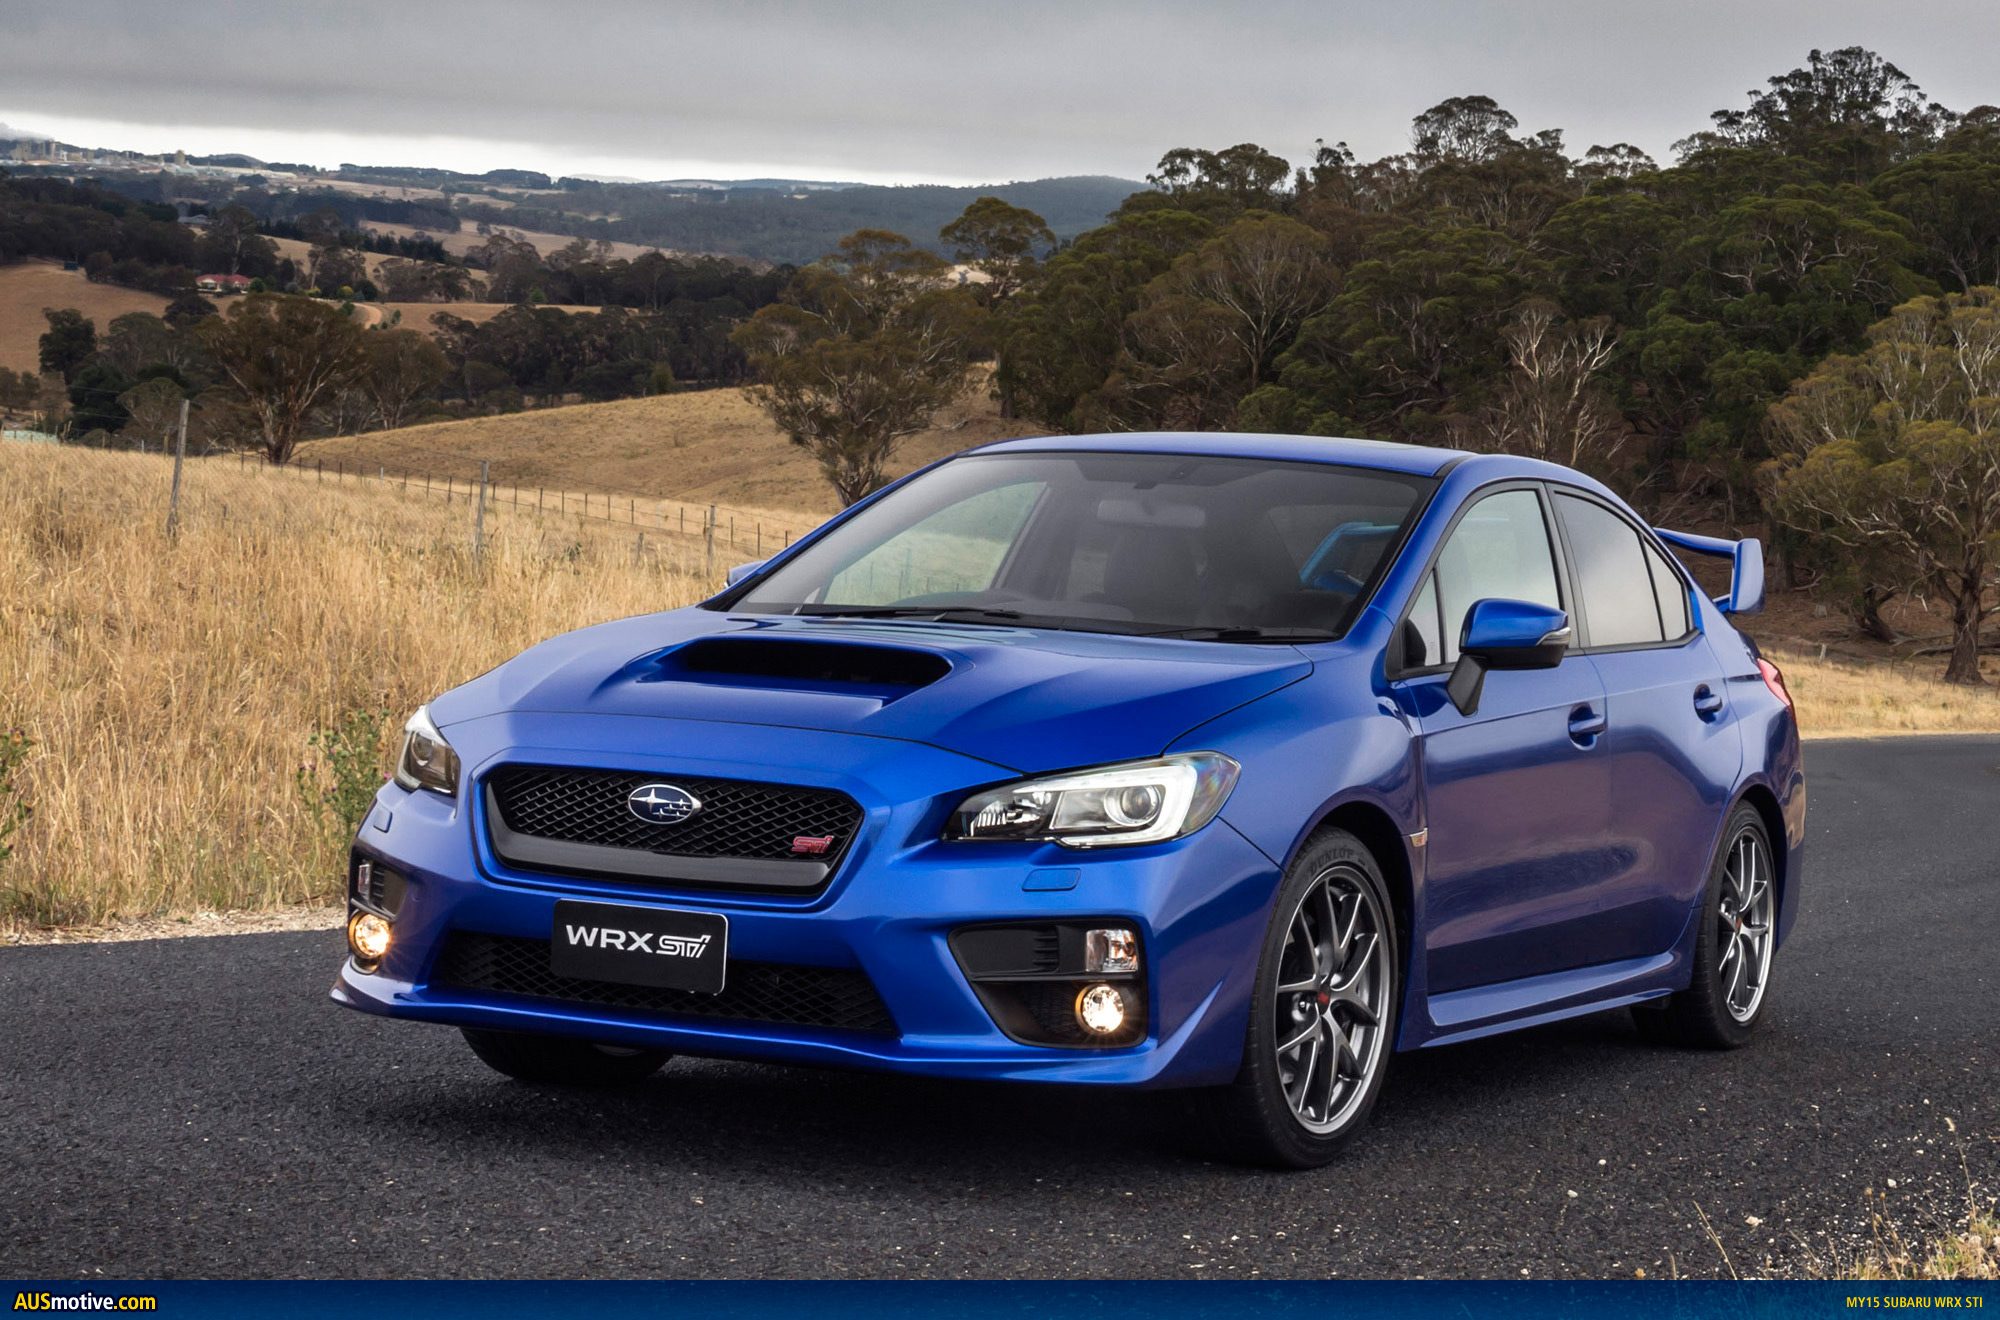 New Motors Subaru Erie Pa >> My New 2015 Subaru Wrx Sti In Galaxy Blue Pearl Photos